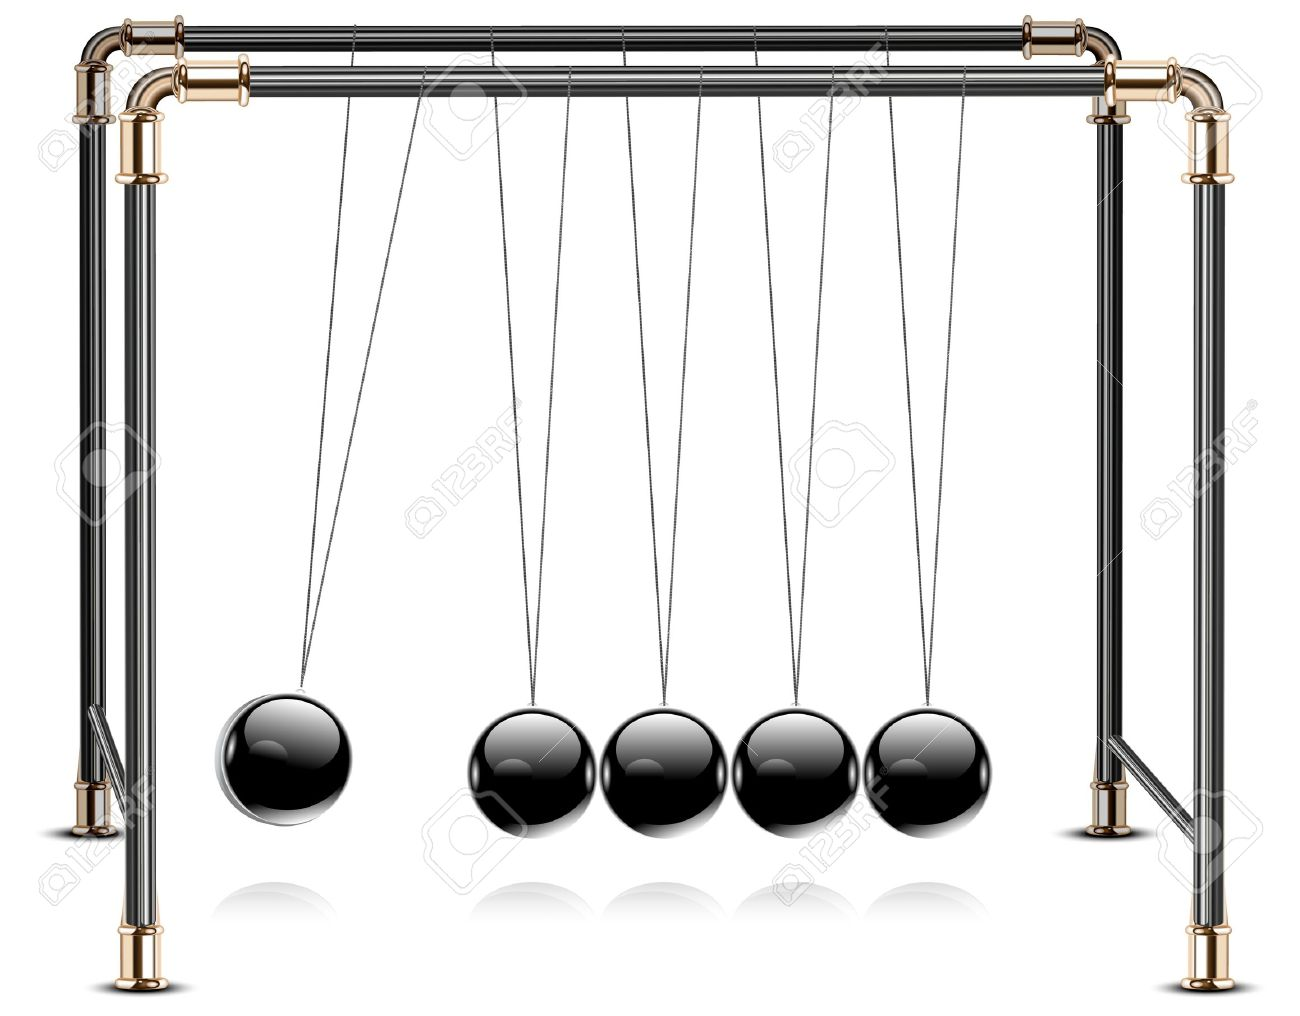 Pendulum, Balancing Balls Newton's Cradle In Action Over Royalty.